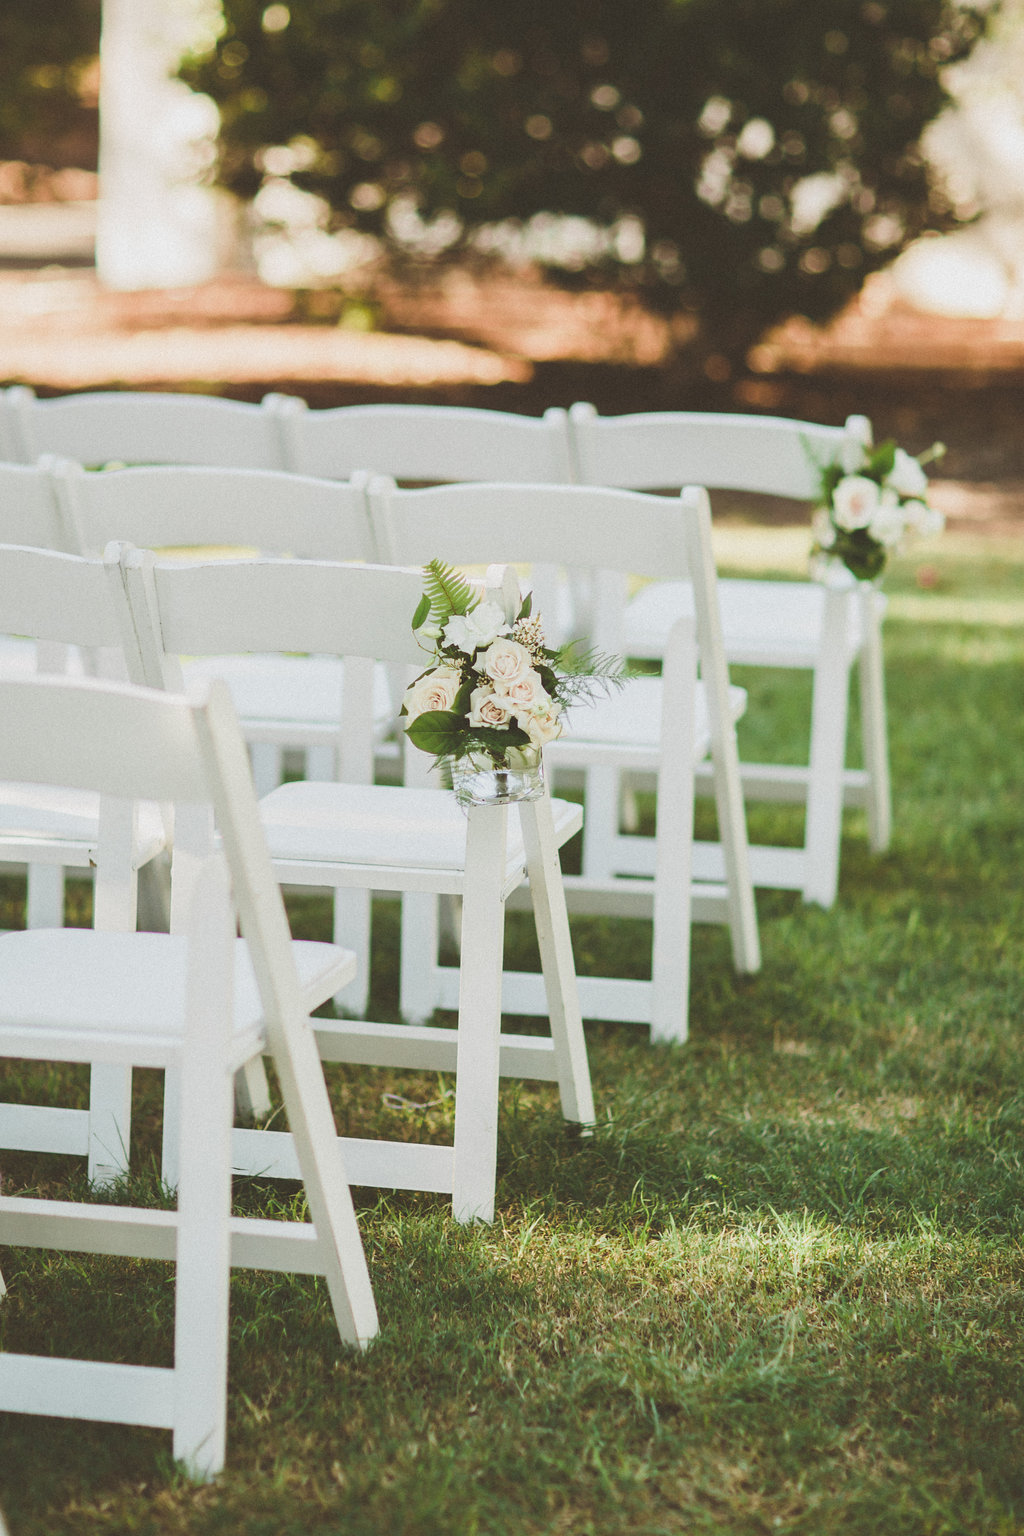 """Ceremony aisle decor          96               Normal   0           false   false   false     EN-US   X-NONE   X-NONE                                                                                                                                                                                                                                                                                                                                                                                                                                                                                                                                                                                                                                                                                                                                                                                                                                                                                  /* Style Definitions */ table.MsoNormalTable {mso-style-name:""""Table Normal""""; mso-tstyle-rowband-size:0; mso-tstyle-colband-size:0; mso-style-noshow:yes; mso-style-priority:99; mso-style-parent:""""""""; mso-padding-alt:0in 5.4pt 0in 5.4pt; mso-para-margin:0in; mso-para-margin-bottom:.0001pt; mso-pagination:widow-orphan; font-size:12.0pt; font-family:Calibri; mso-ascii-font-family:Calibri; mso-ascii-theme-font:minor-latin; mso-hansi-font-family:Calibri; mso-hansi-theme-font:minor-latin;}       by San Diego wedding florist, Compass Floral."""